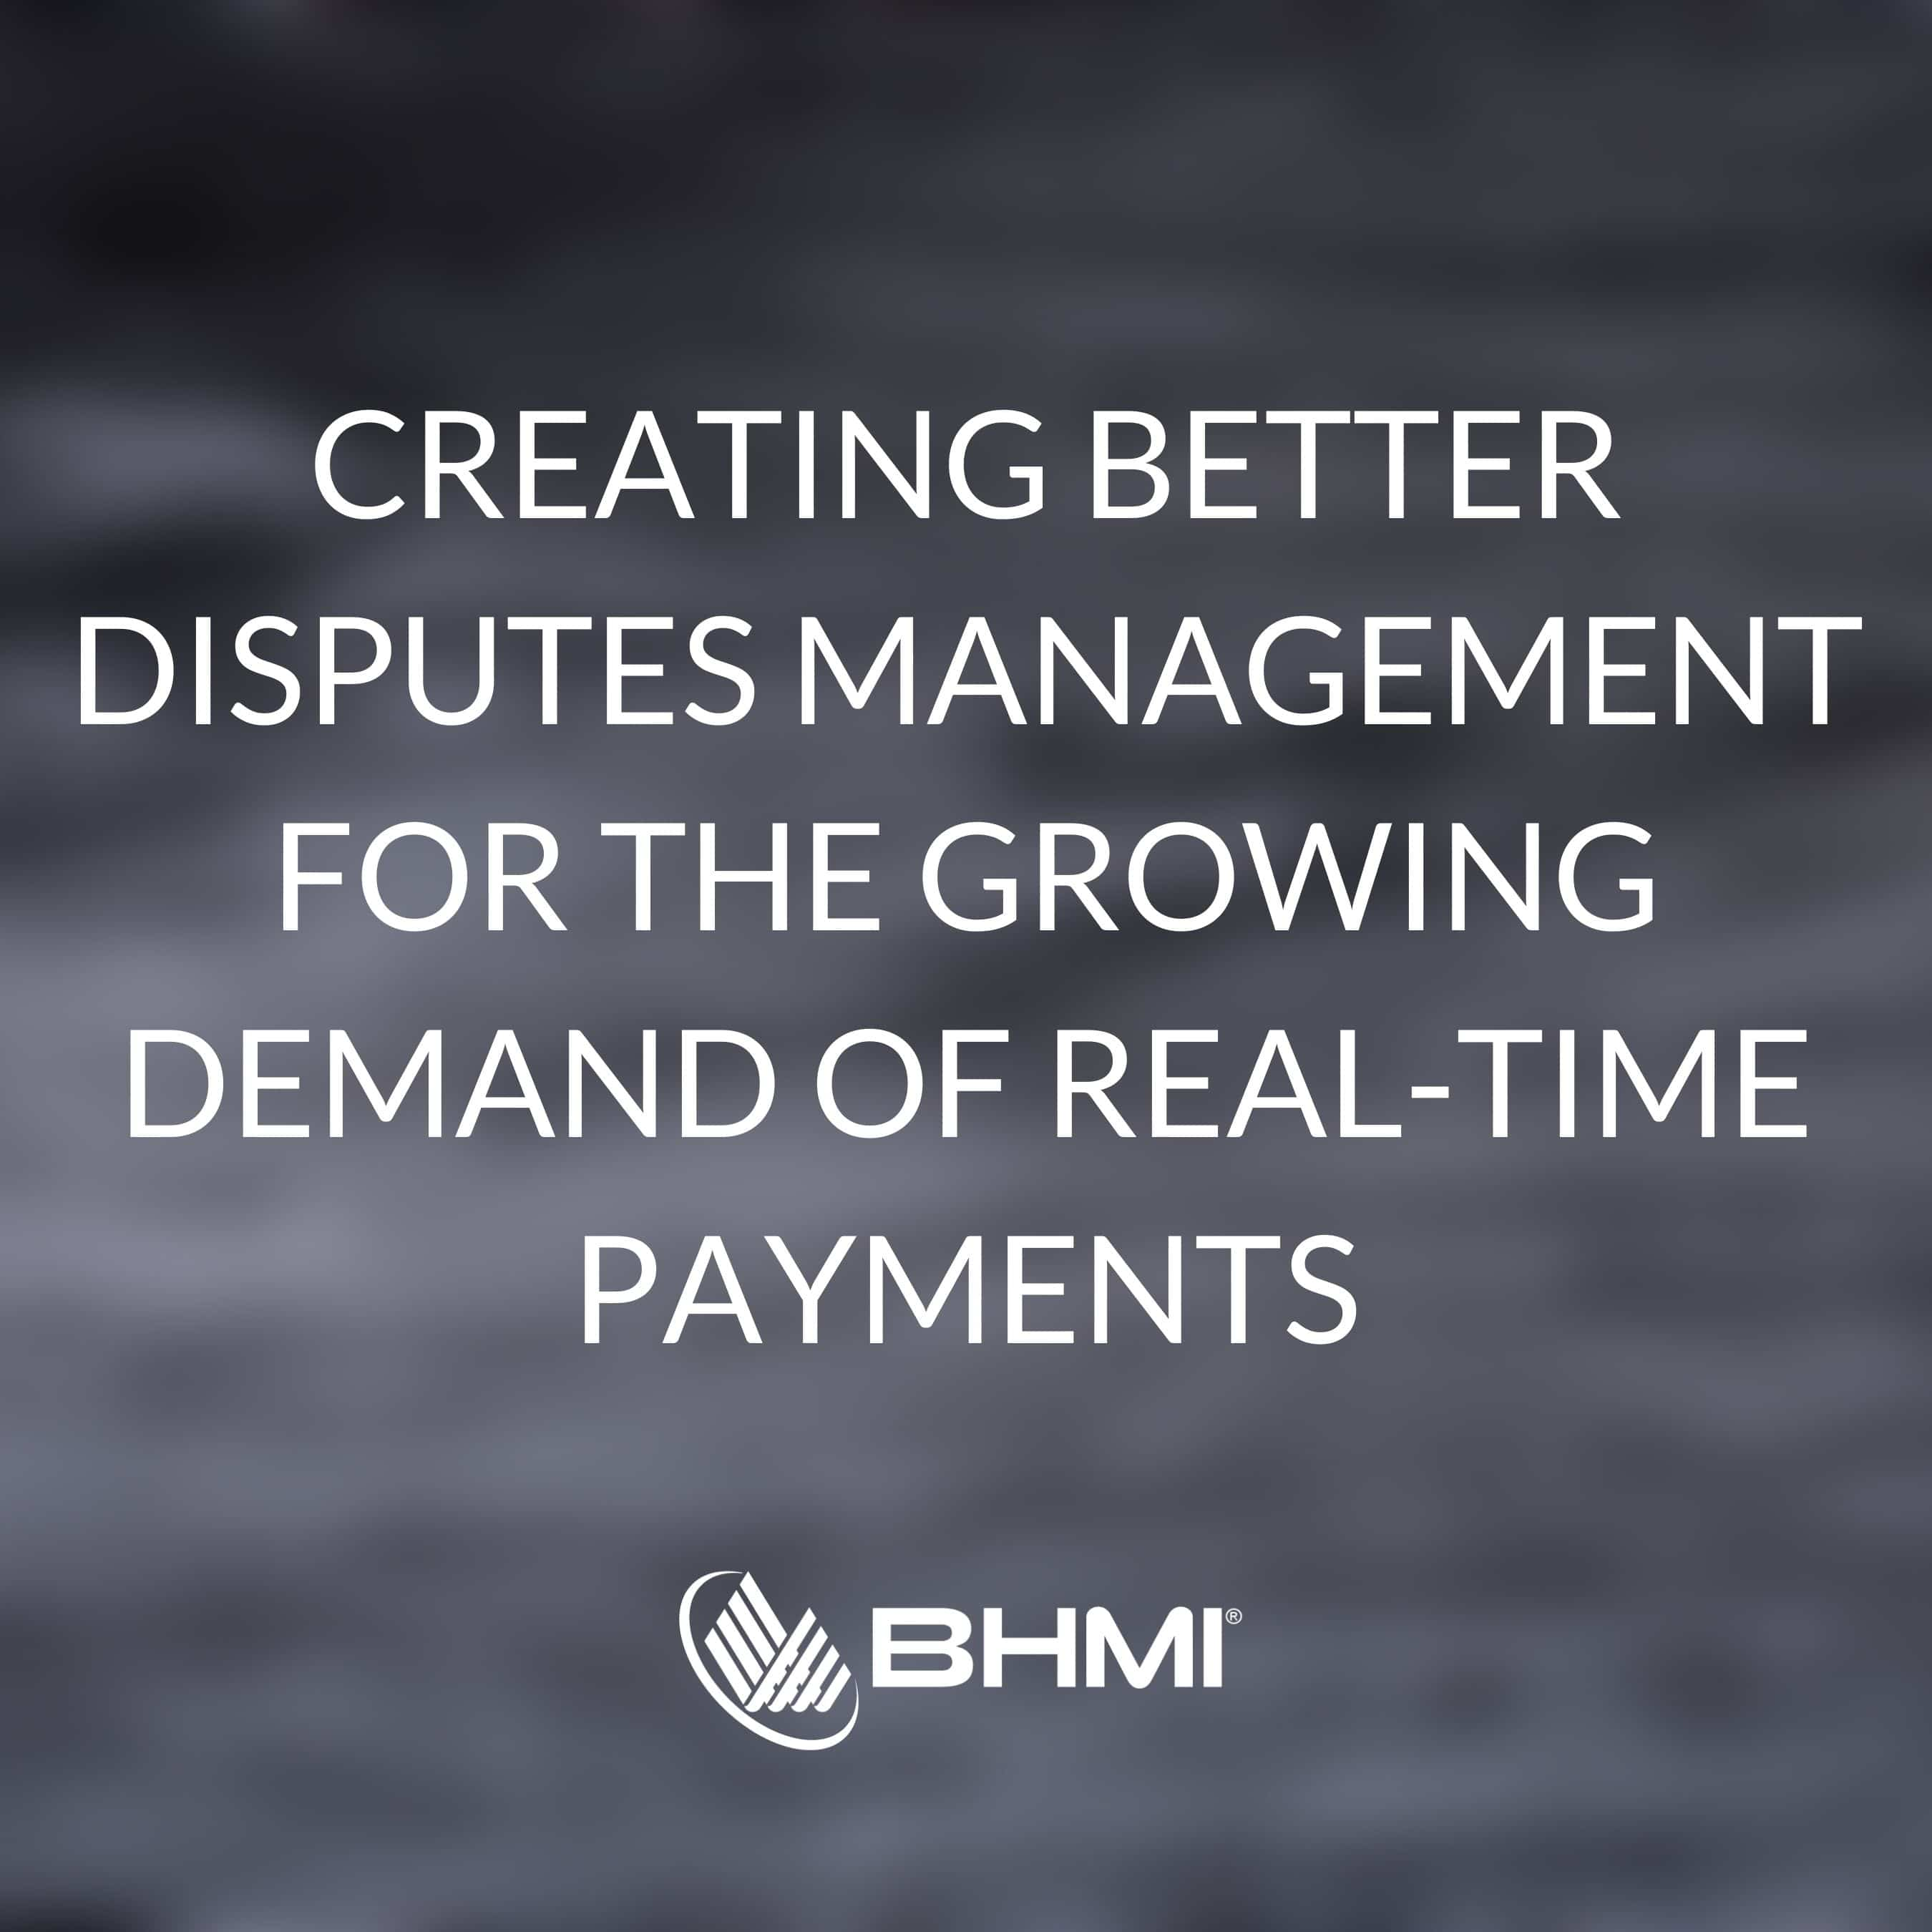 Creating Better Disputes Management For the Growing Demand of Realtime Payments